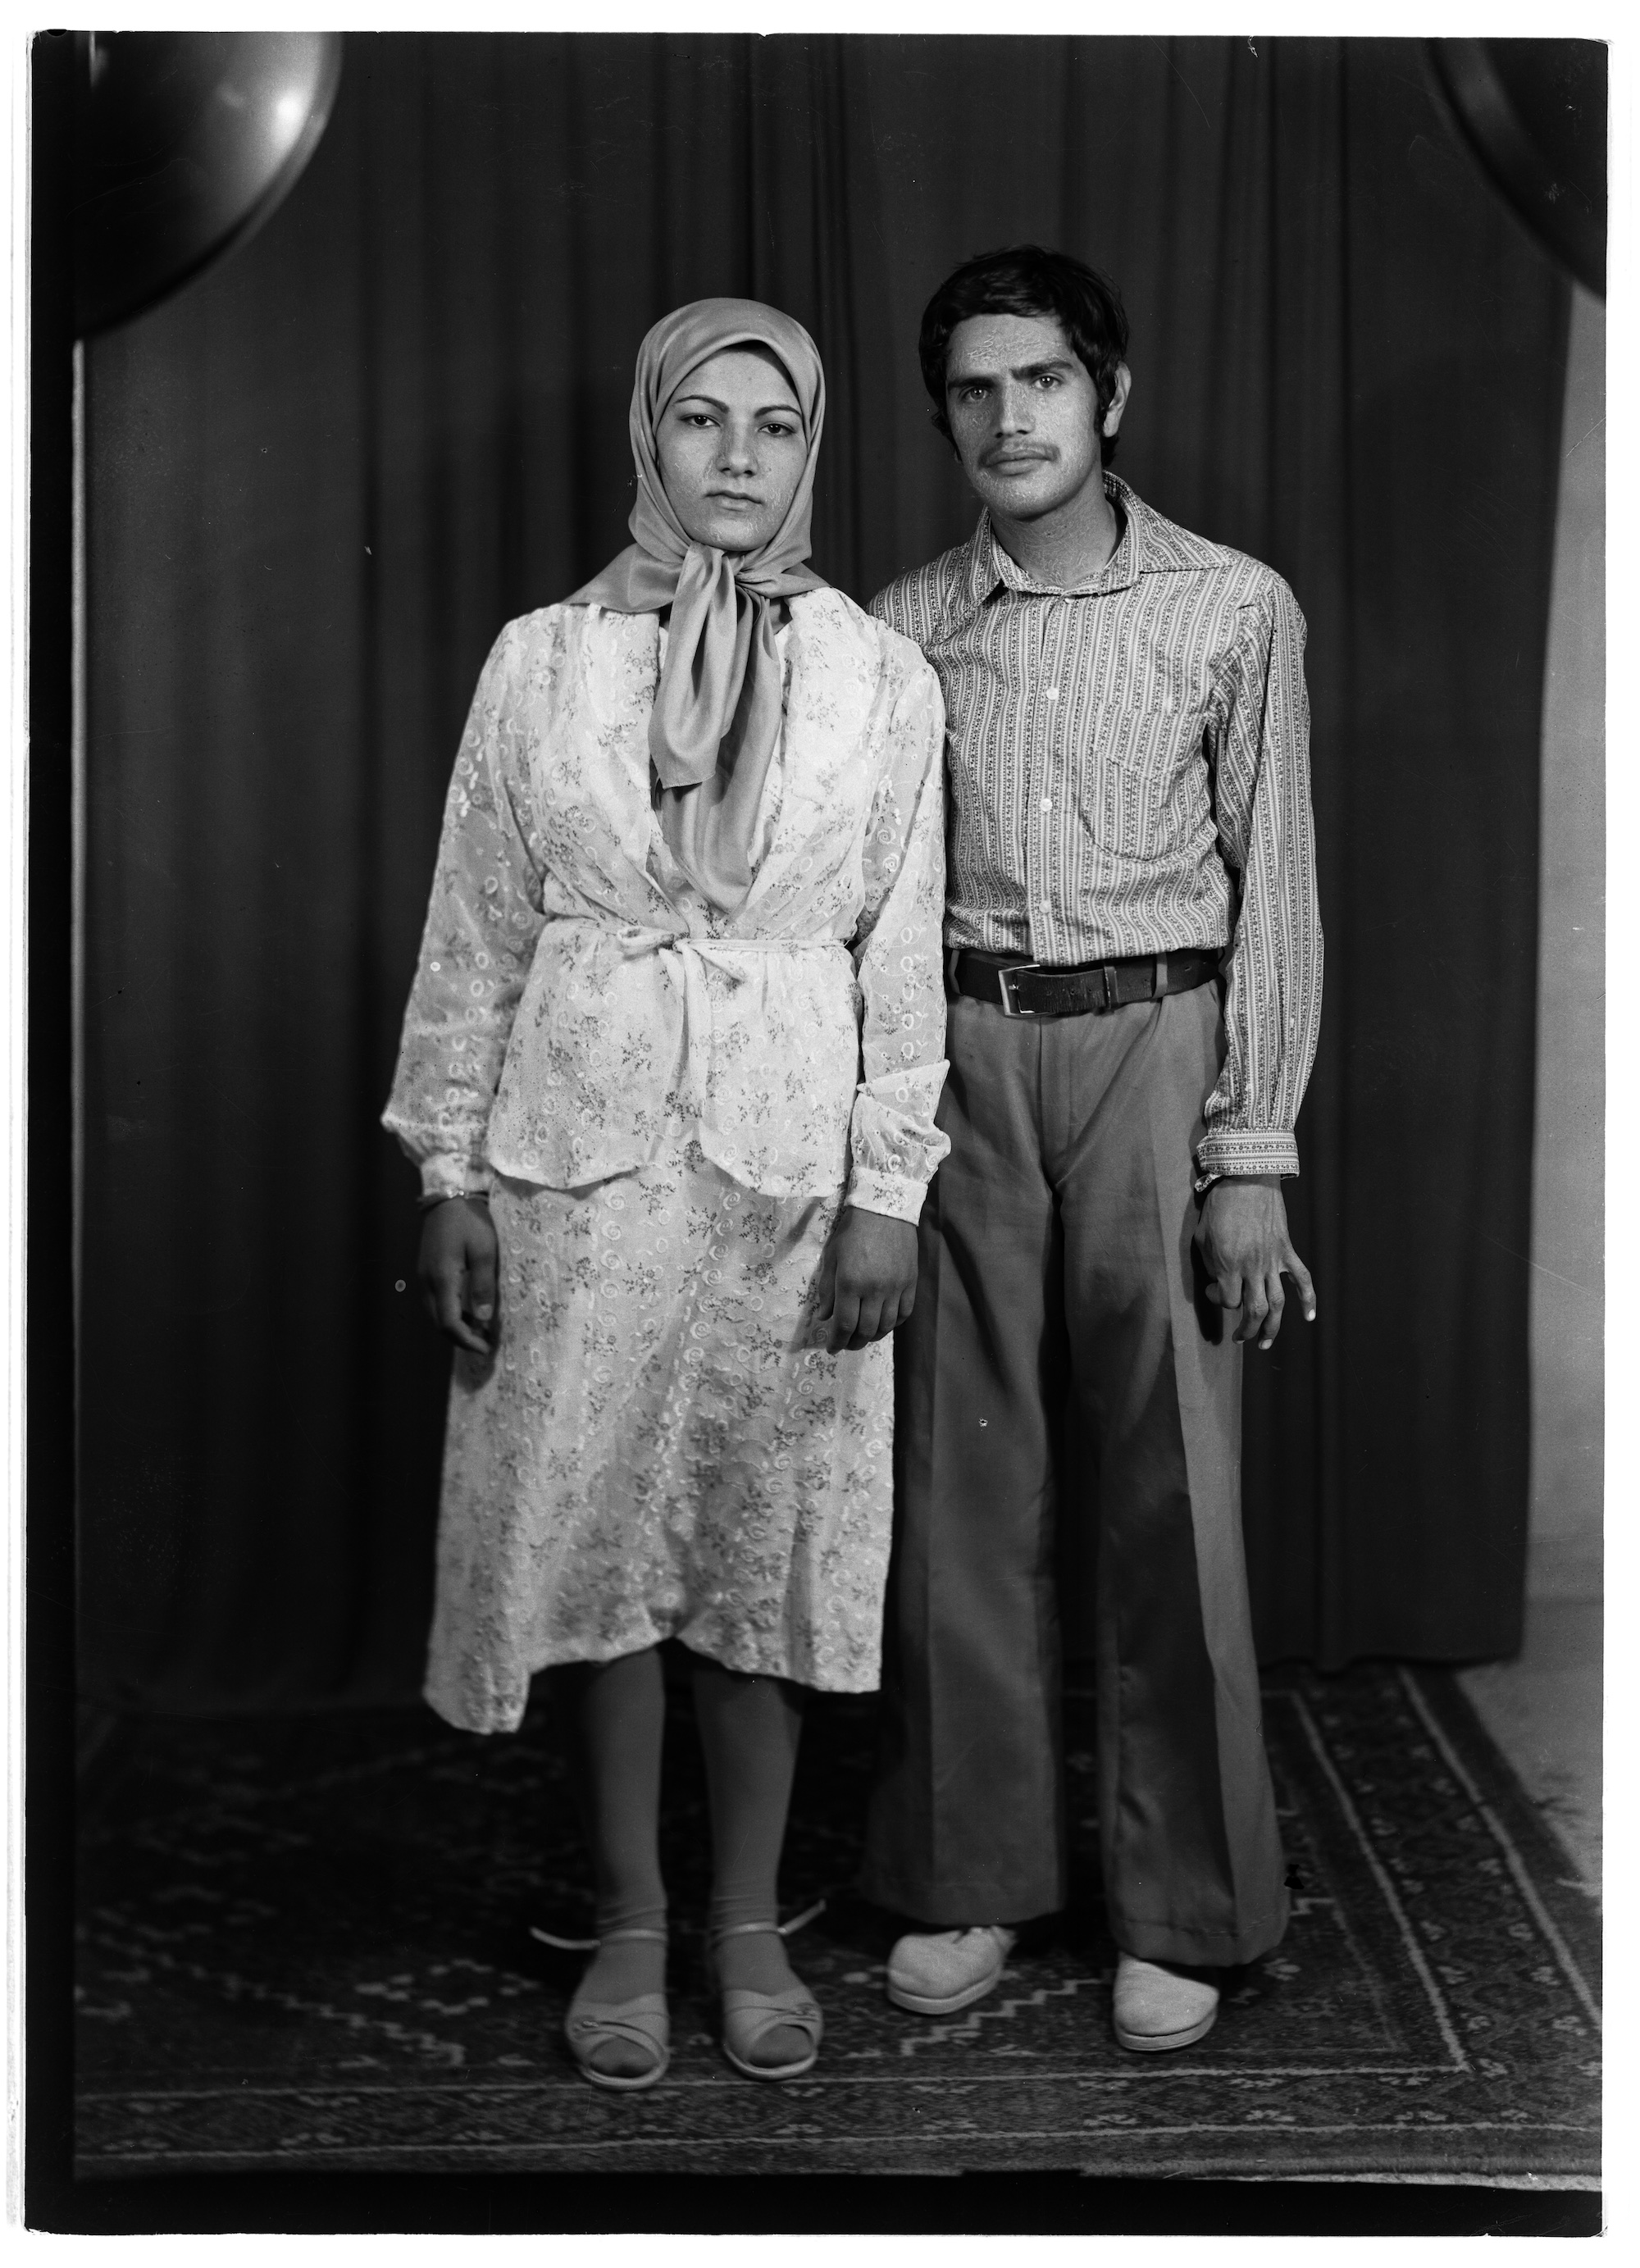 Iranian Photo Studio of pre-Islamic revolution. Collection of Shadi Ghadirian.